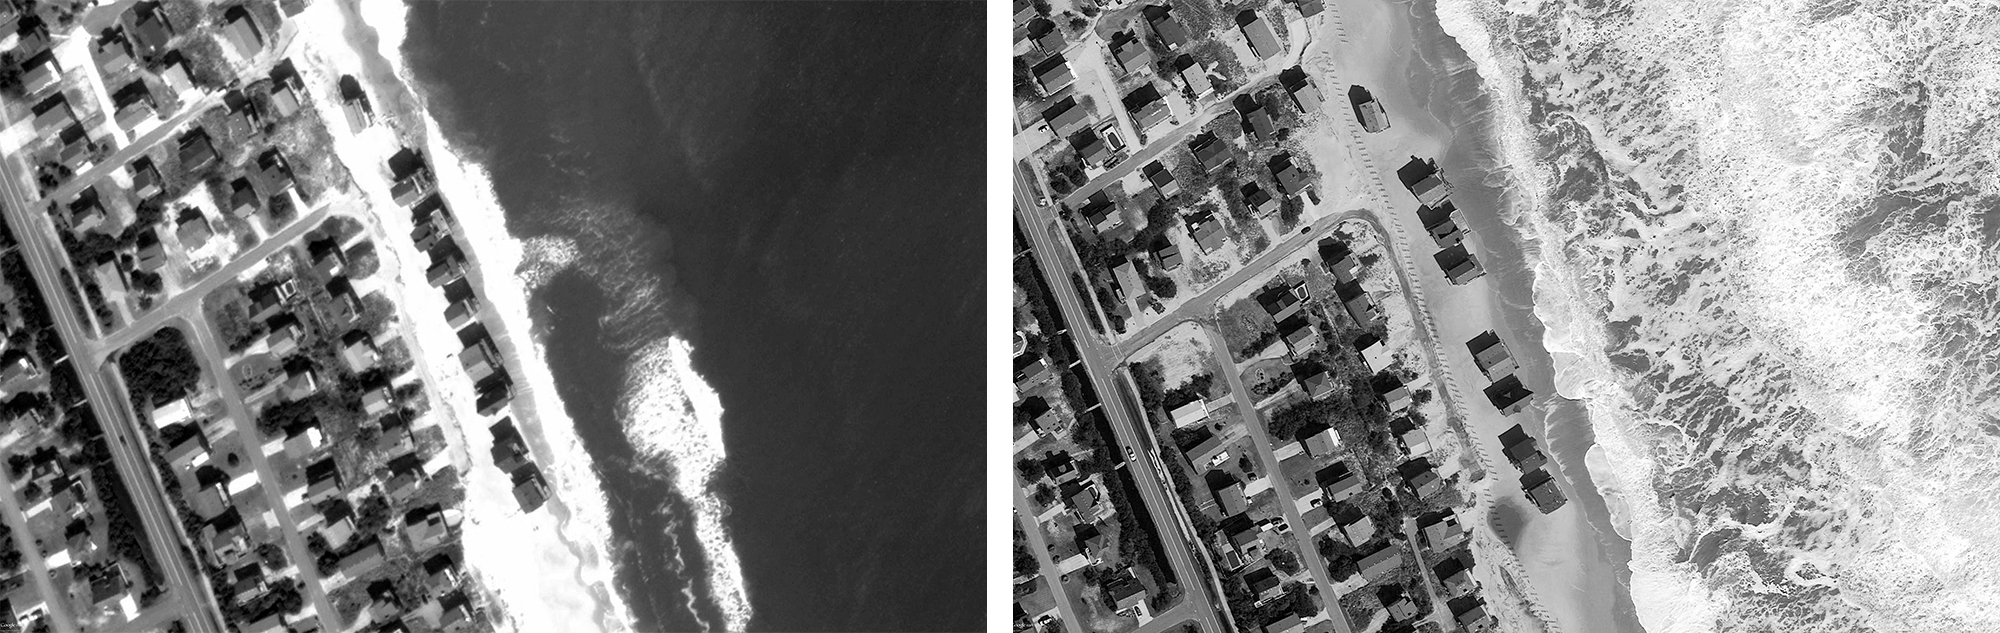 Satellite images of E Seagull Dr, March 2011 on left and March 2013 on right.